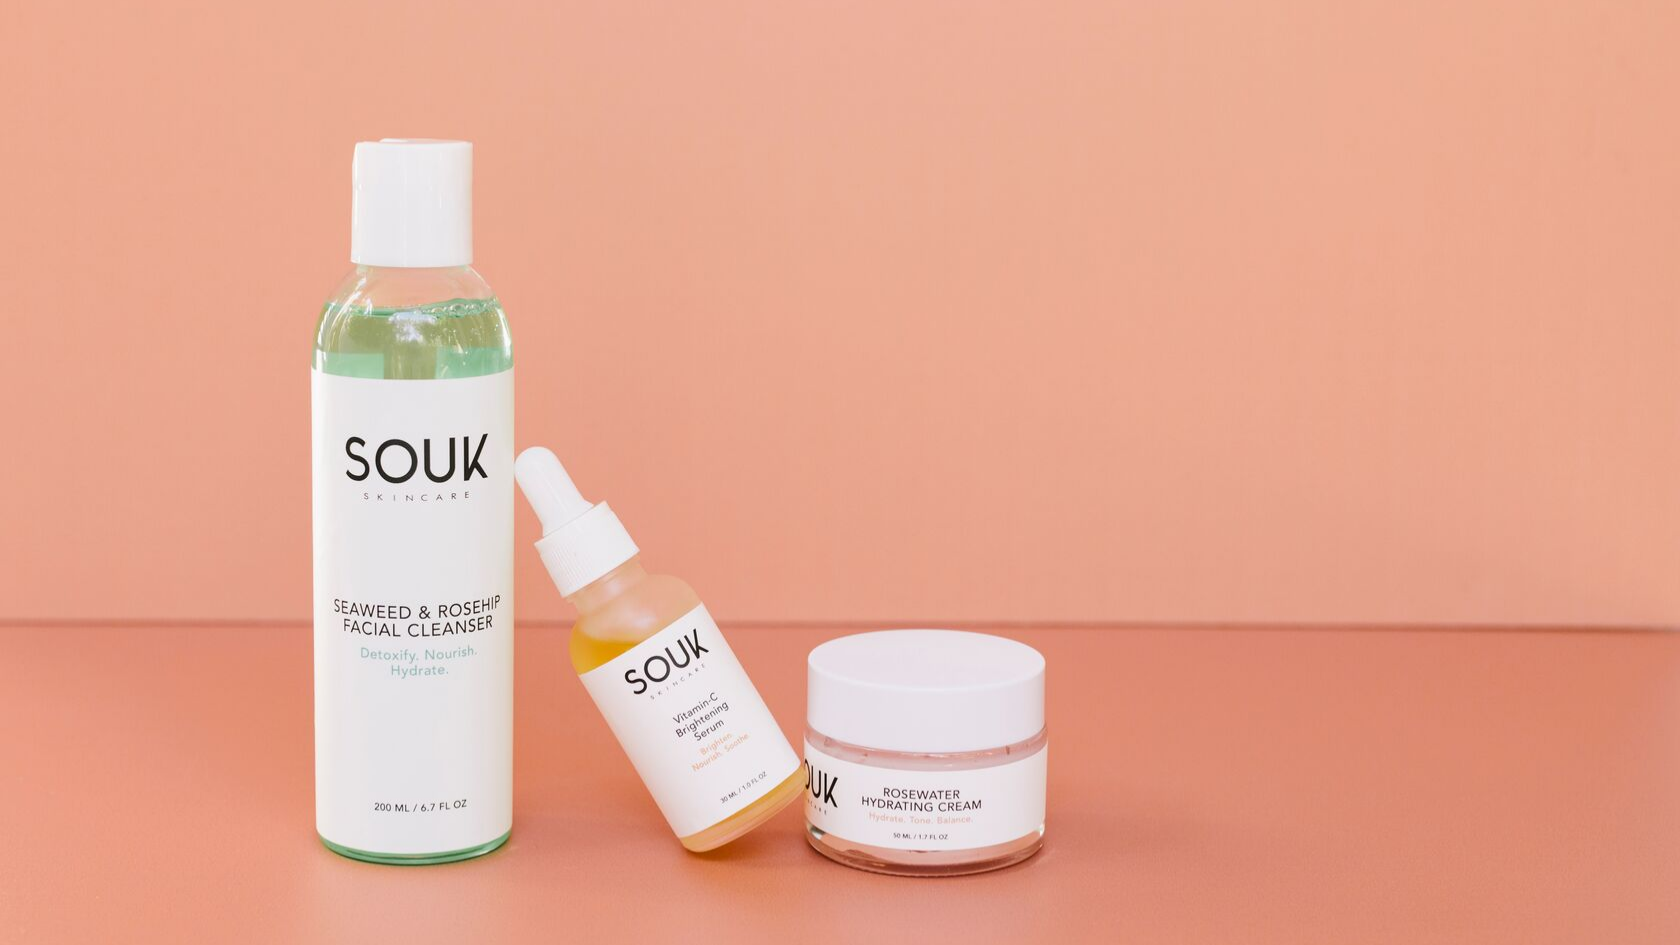 Only Have 5 Minutes in the Morning? These Products are a Must! by SOUK Skincare